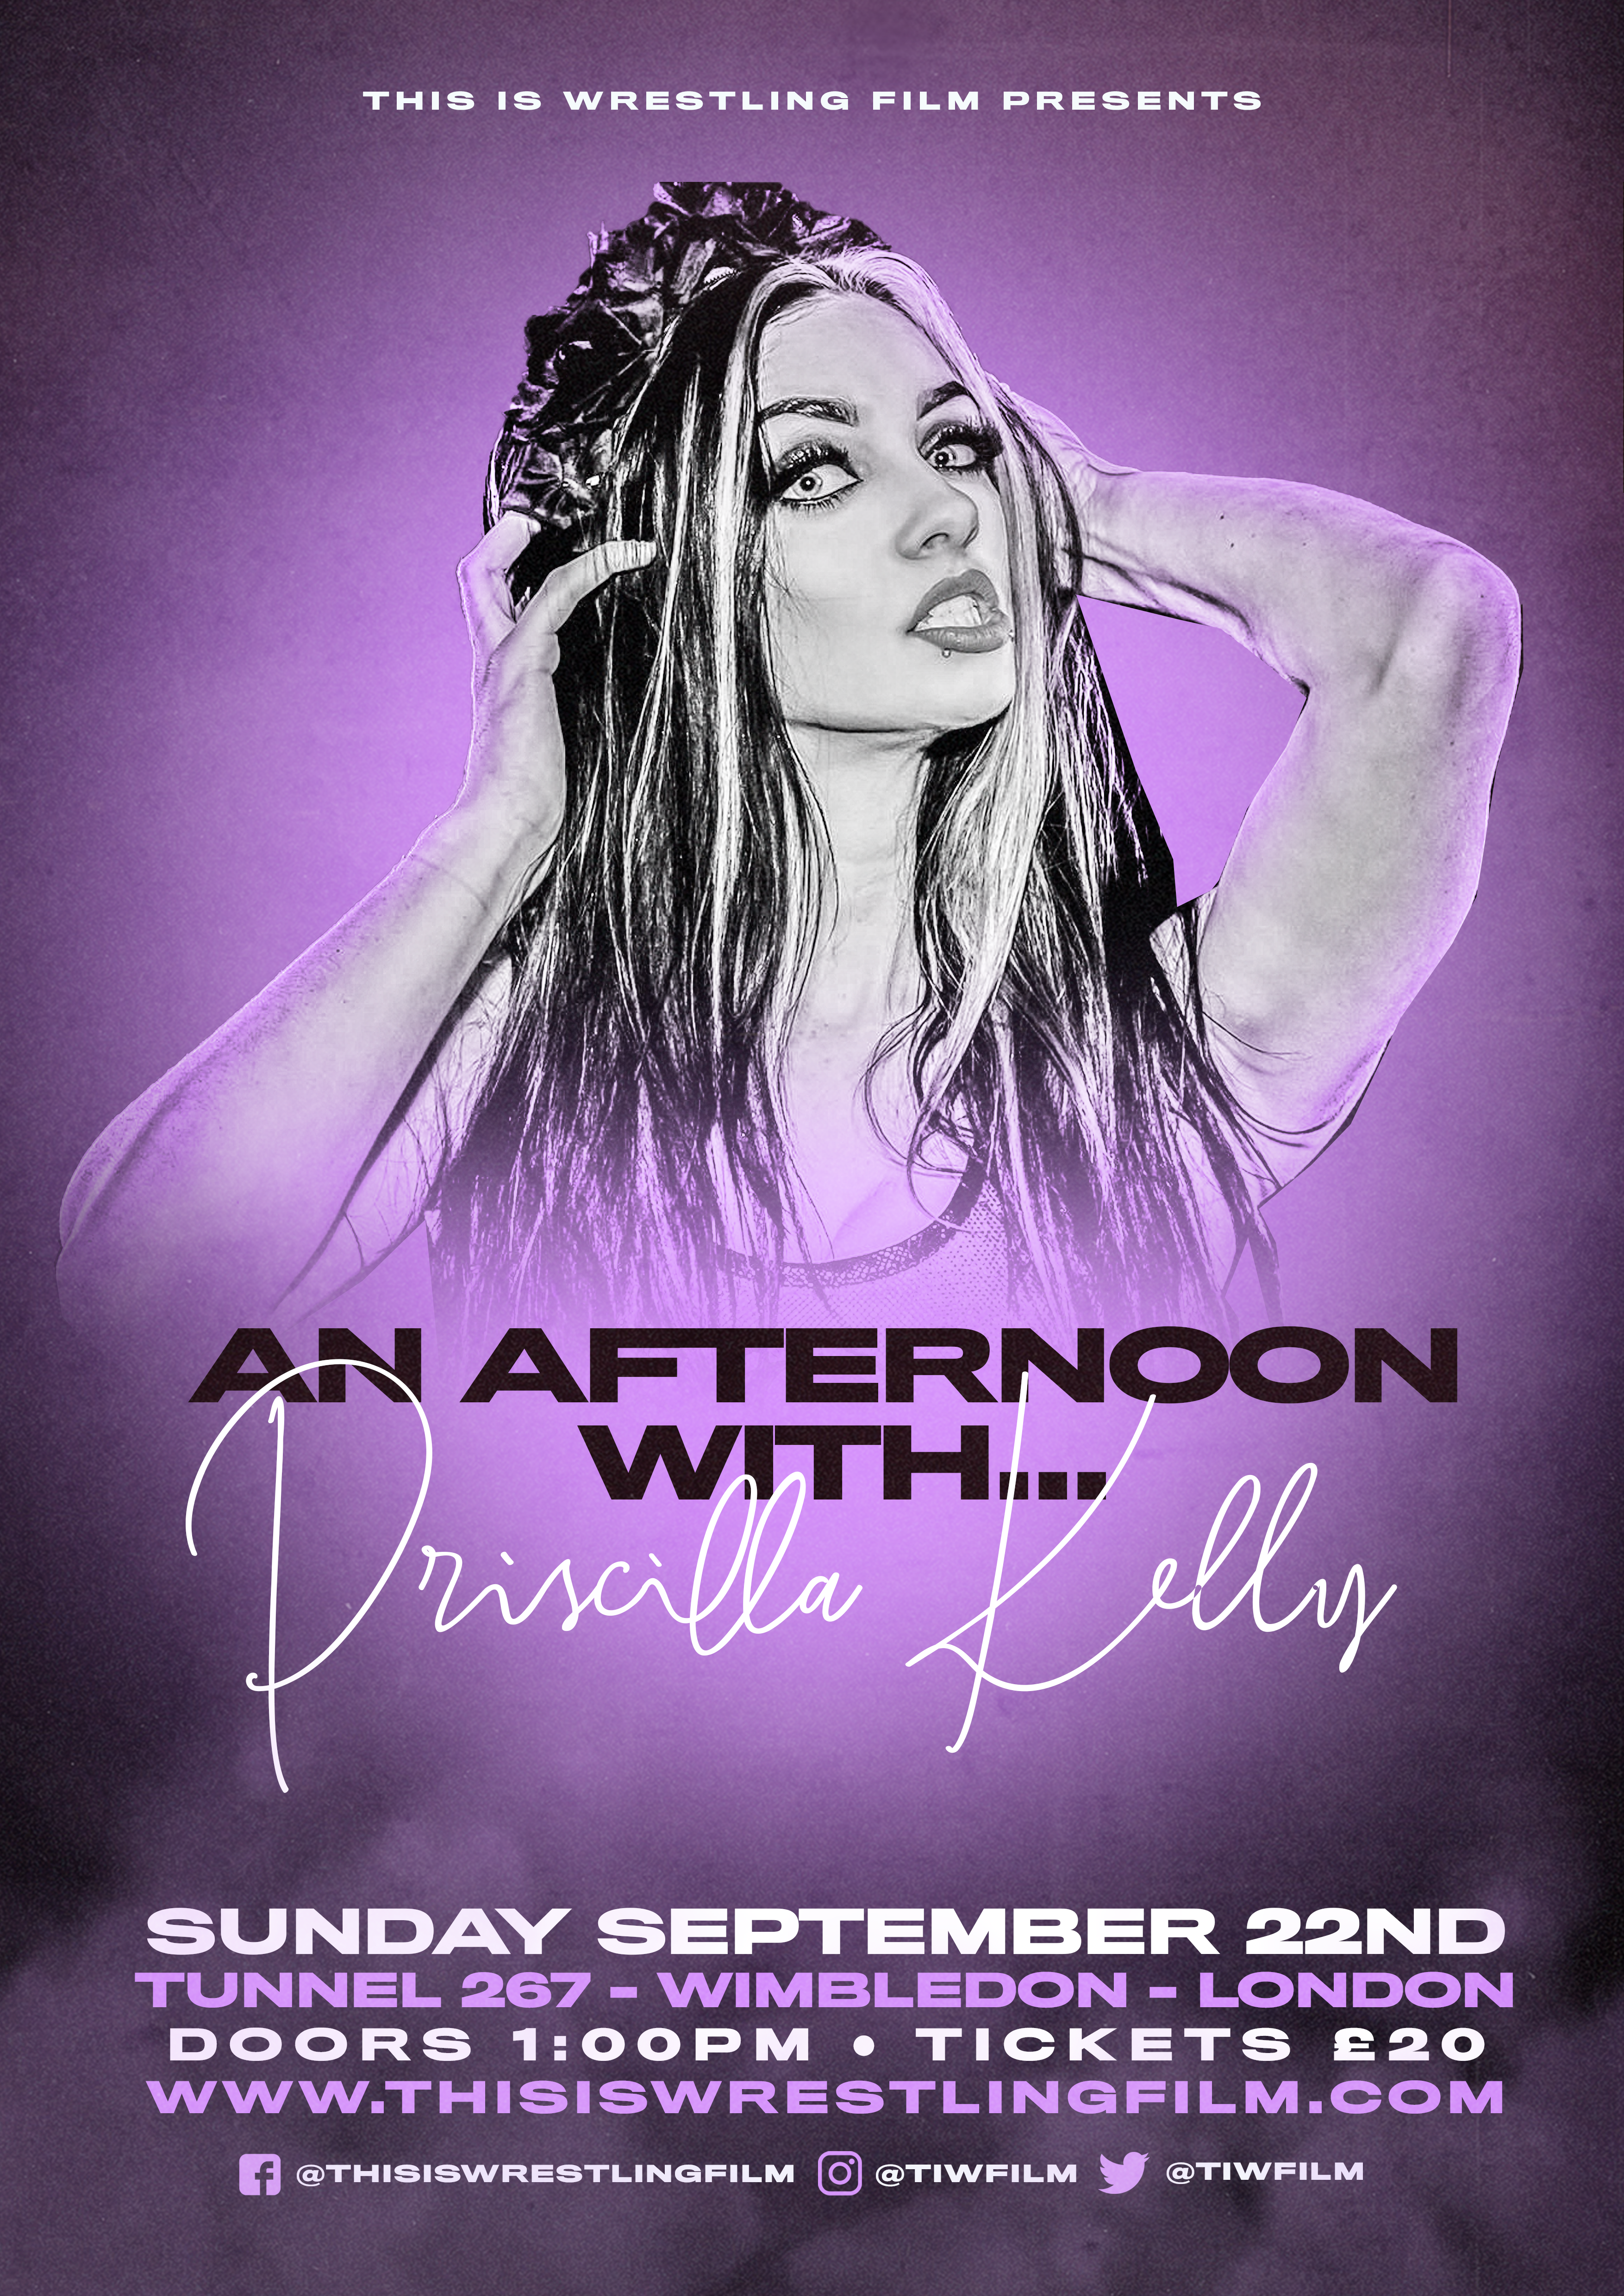 An Afternoon With Priscilla Kelly event description image